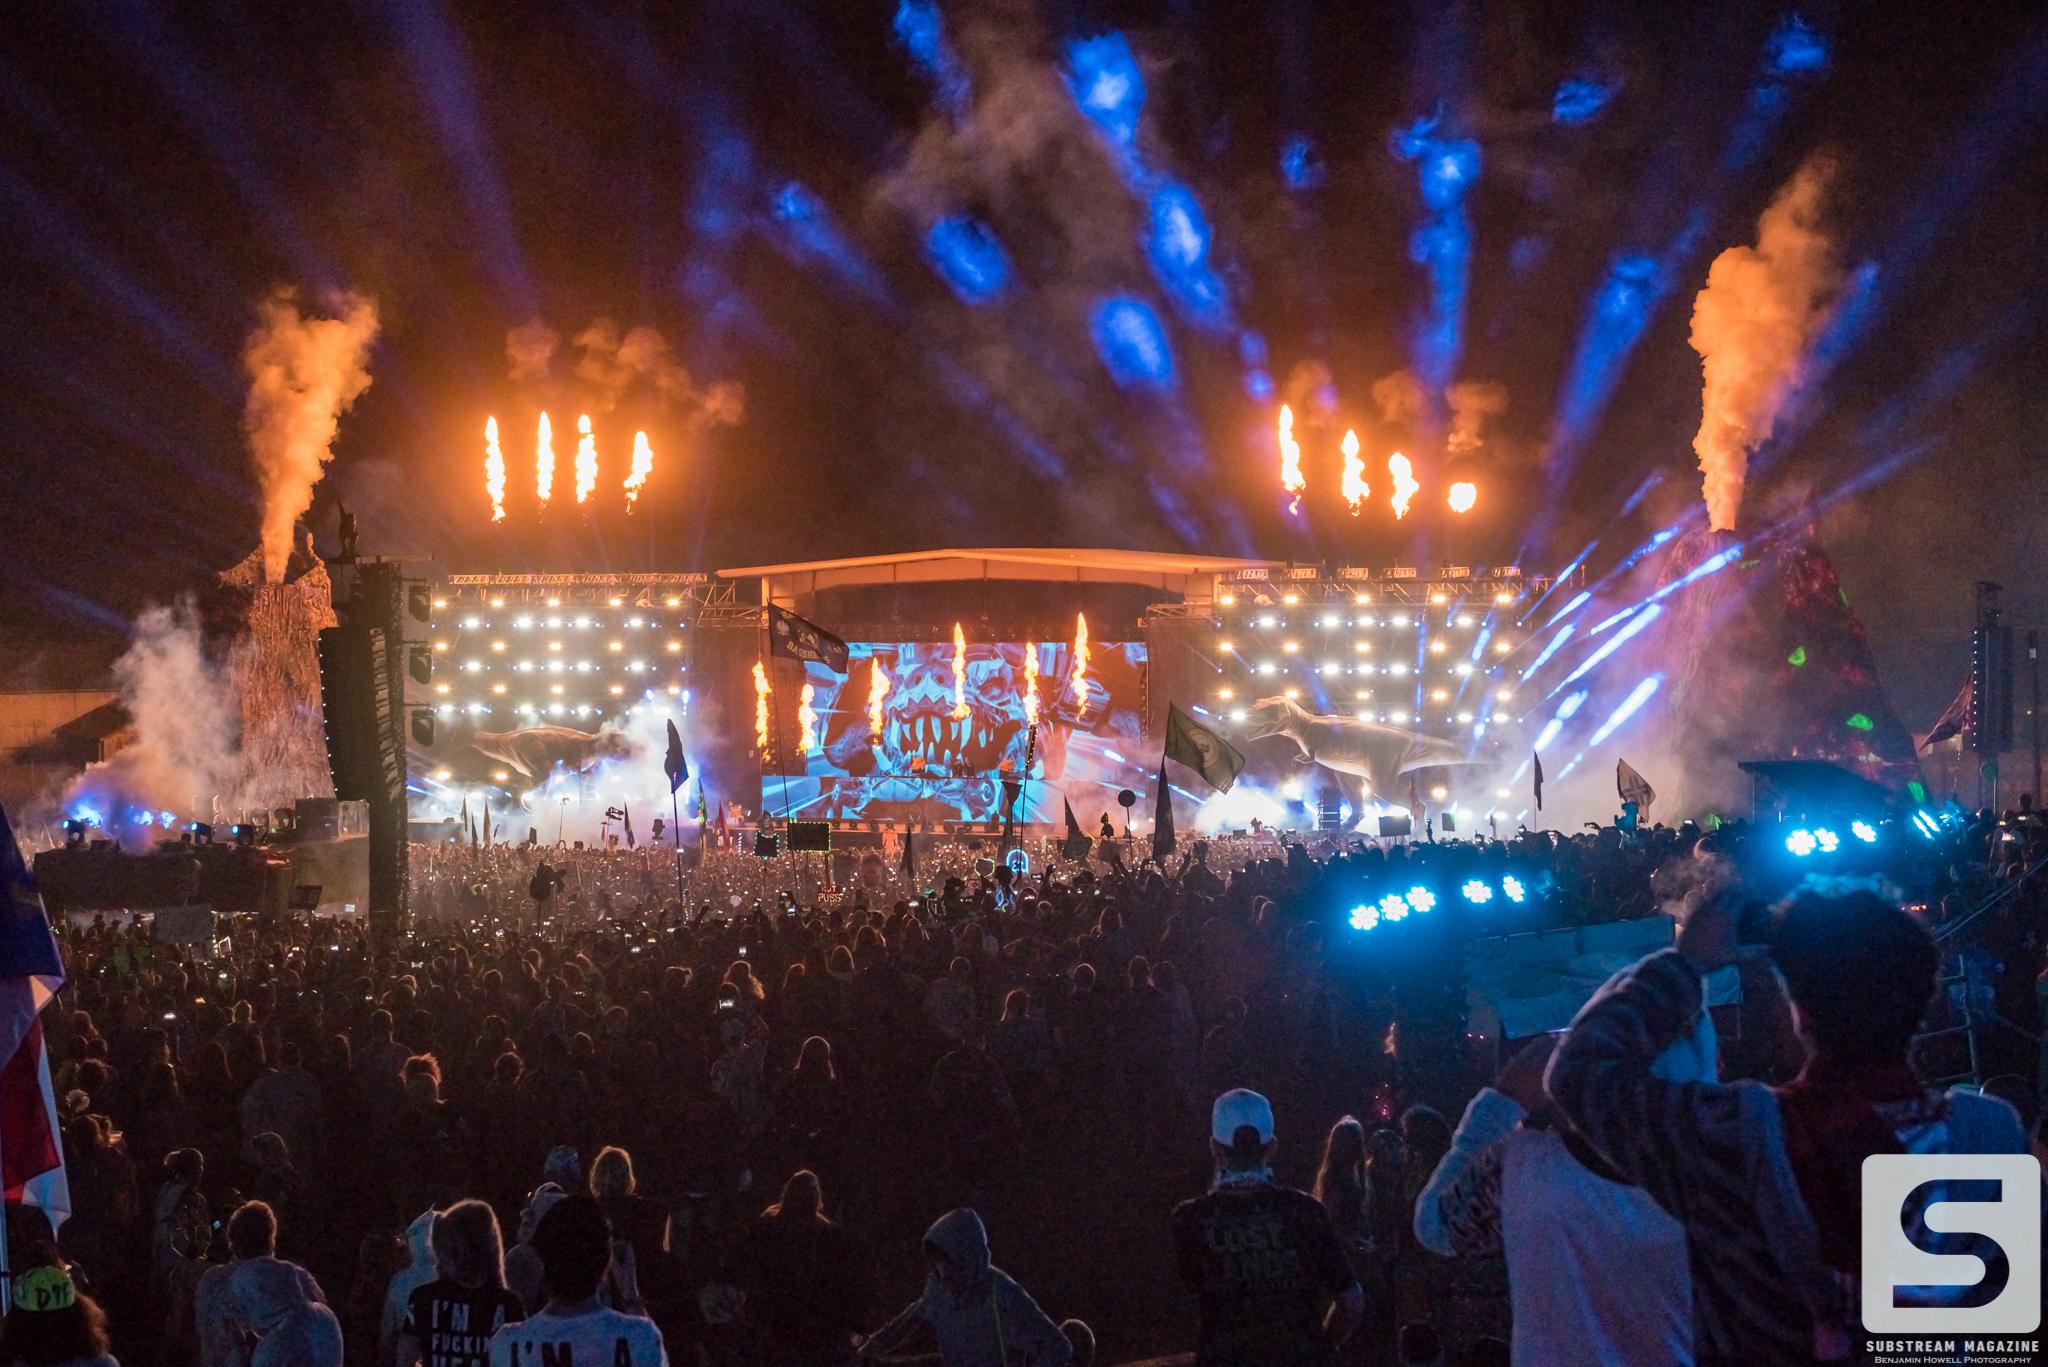 Dinosaurs And Bass: A journey into the inaugural Lost Lands music festival